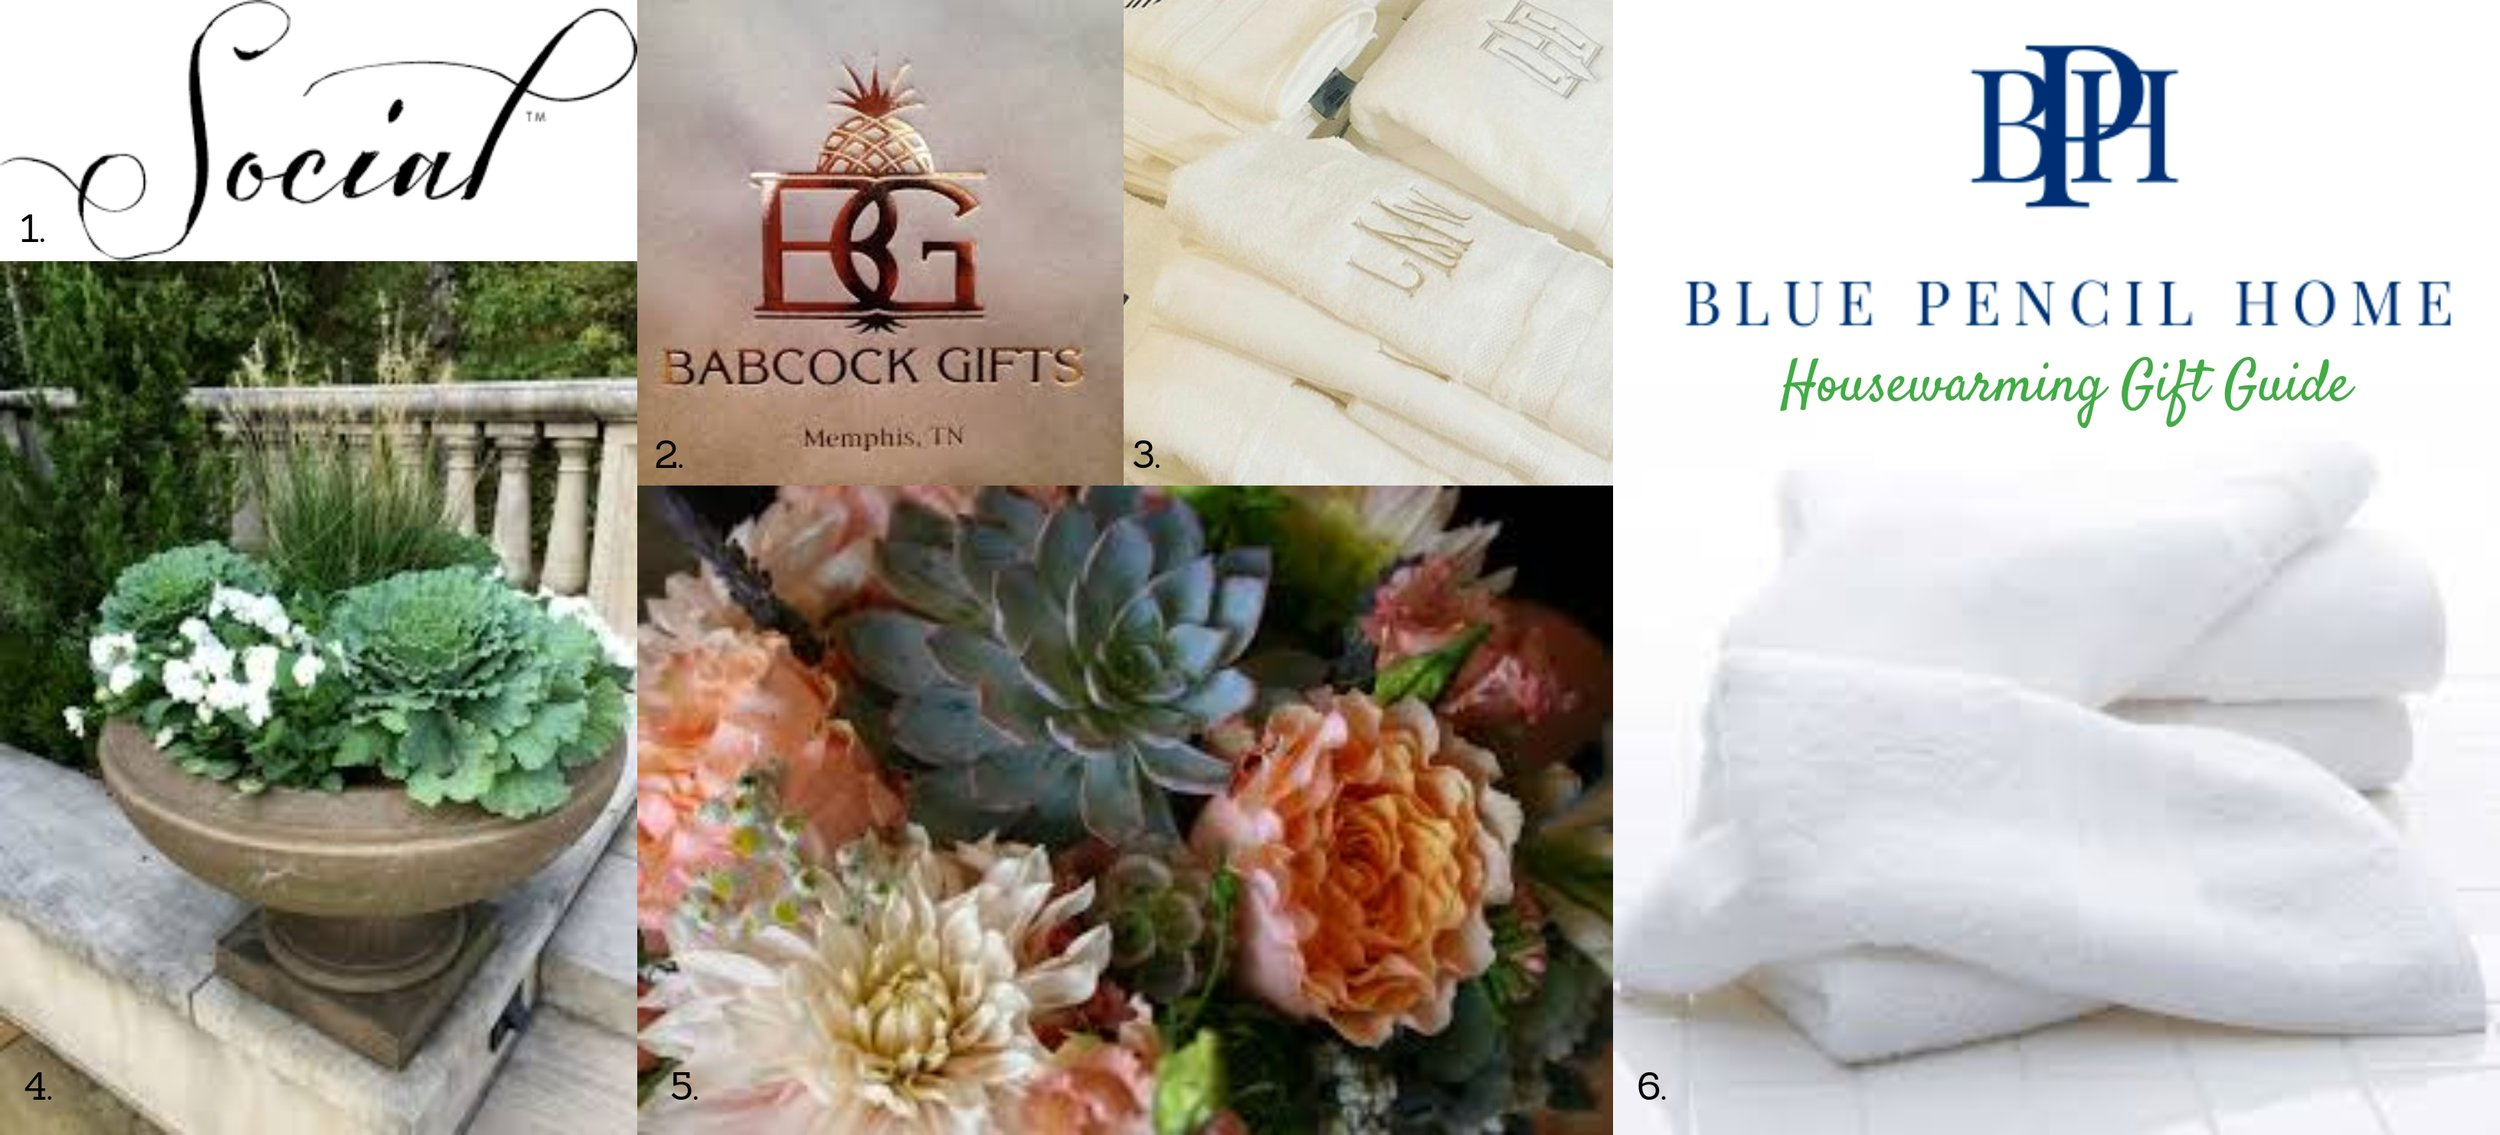 housewarming gift guide, spring, blue pencil home